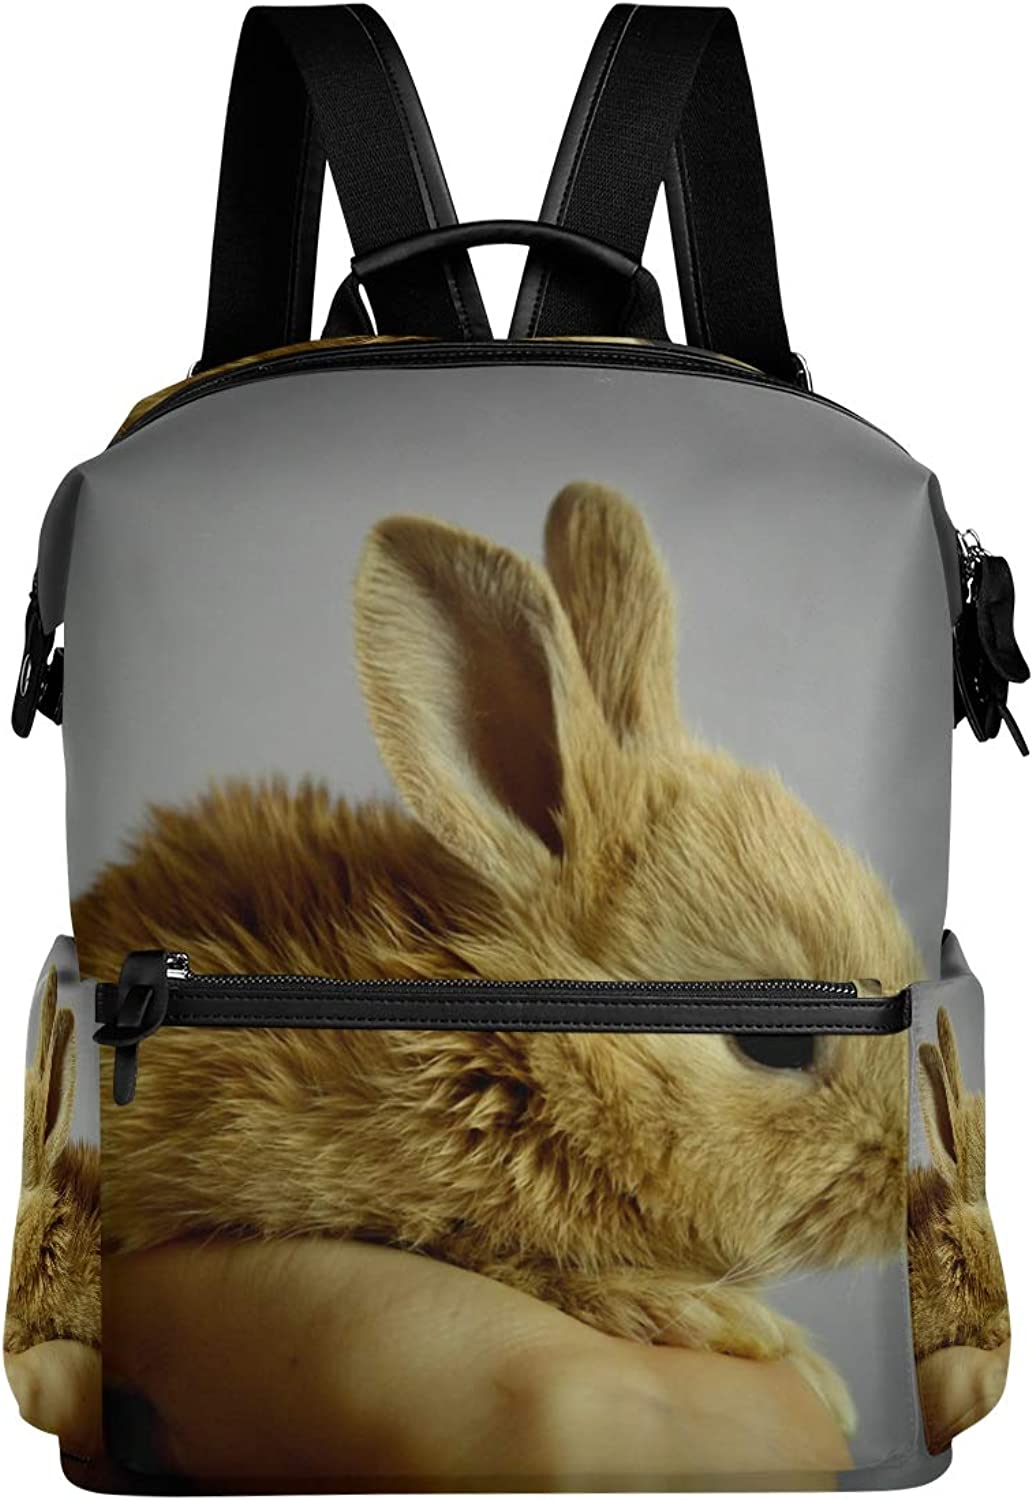 MONTOJ Cute Baby Rabbit Leather Travel Bag Campus Backpack